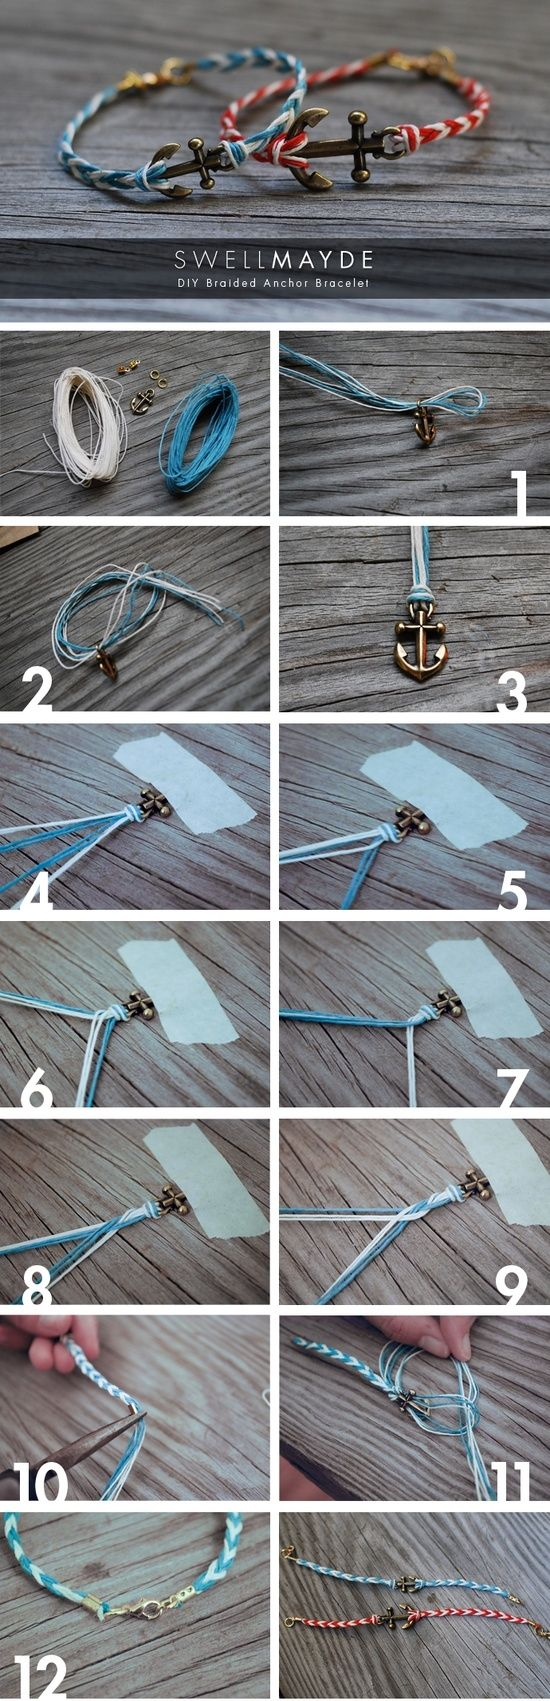 DIY braided anchor bracelet.